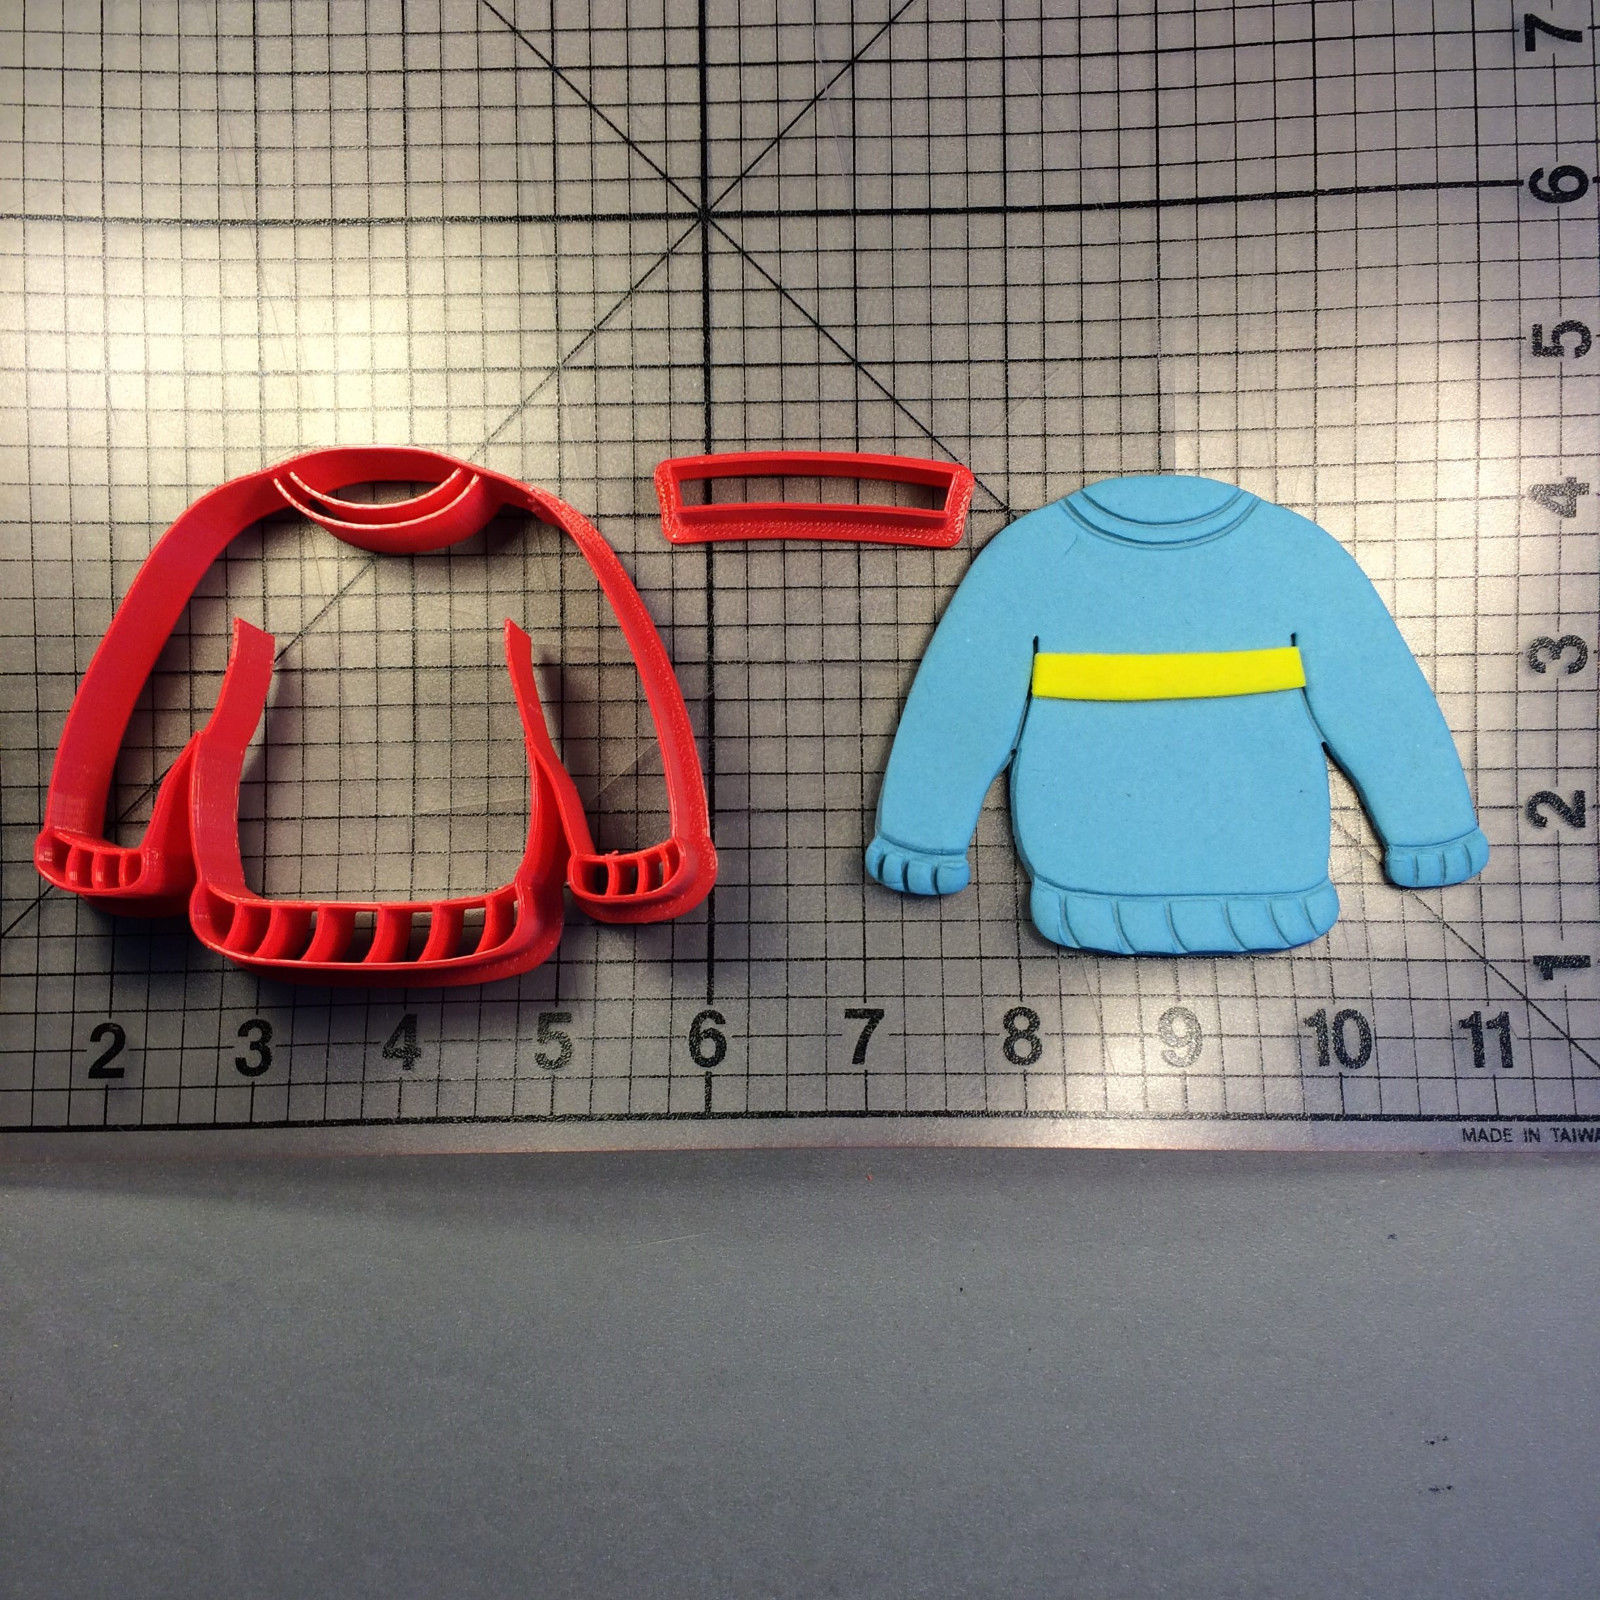 Sweater 100 Cookie Cutter Set - $6.00 - $9.00